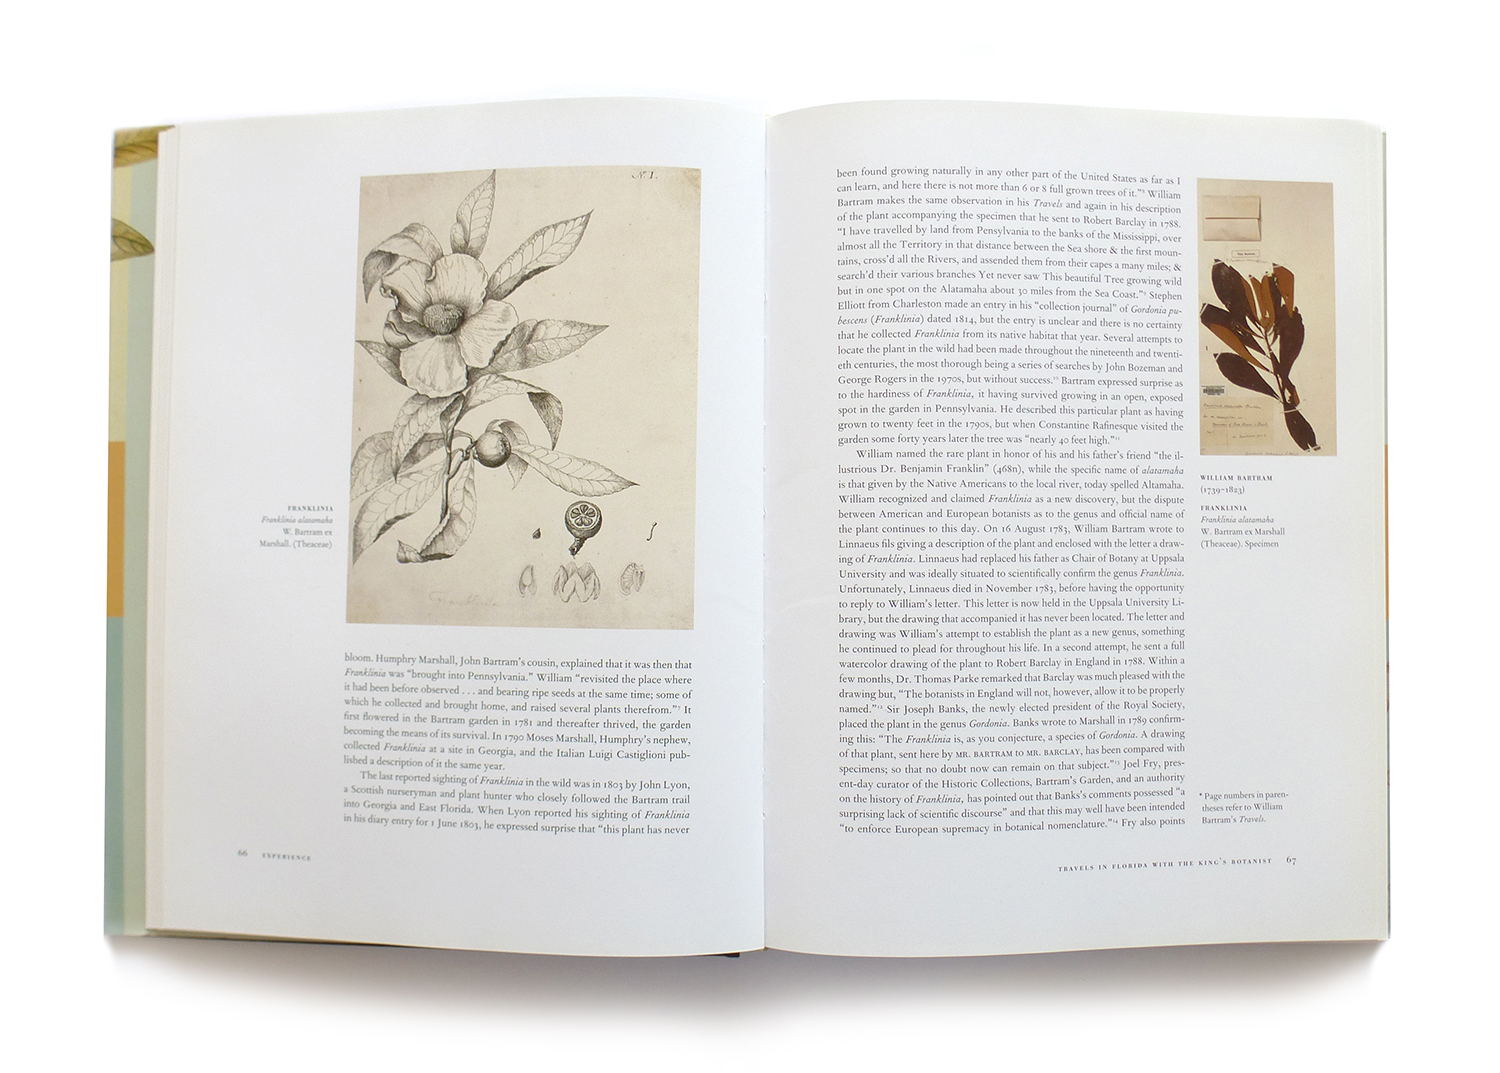 2008 AAUP Book, Jacket, & Journal Show: Interior Selection